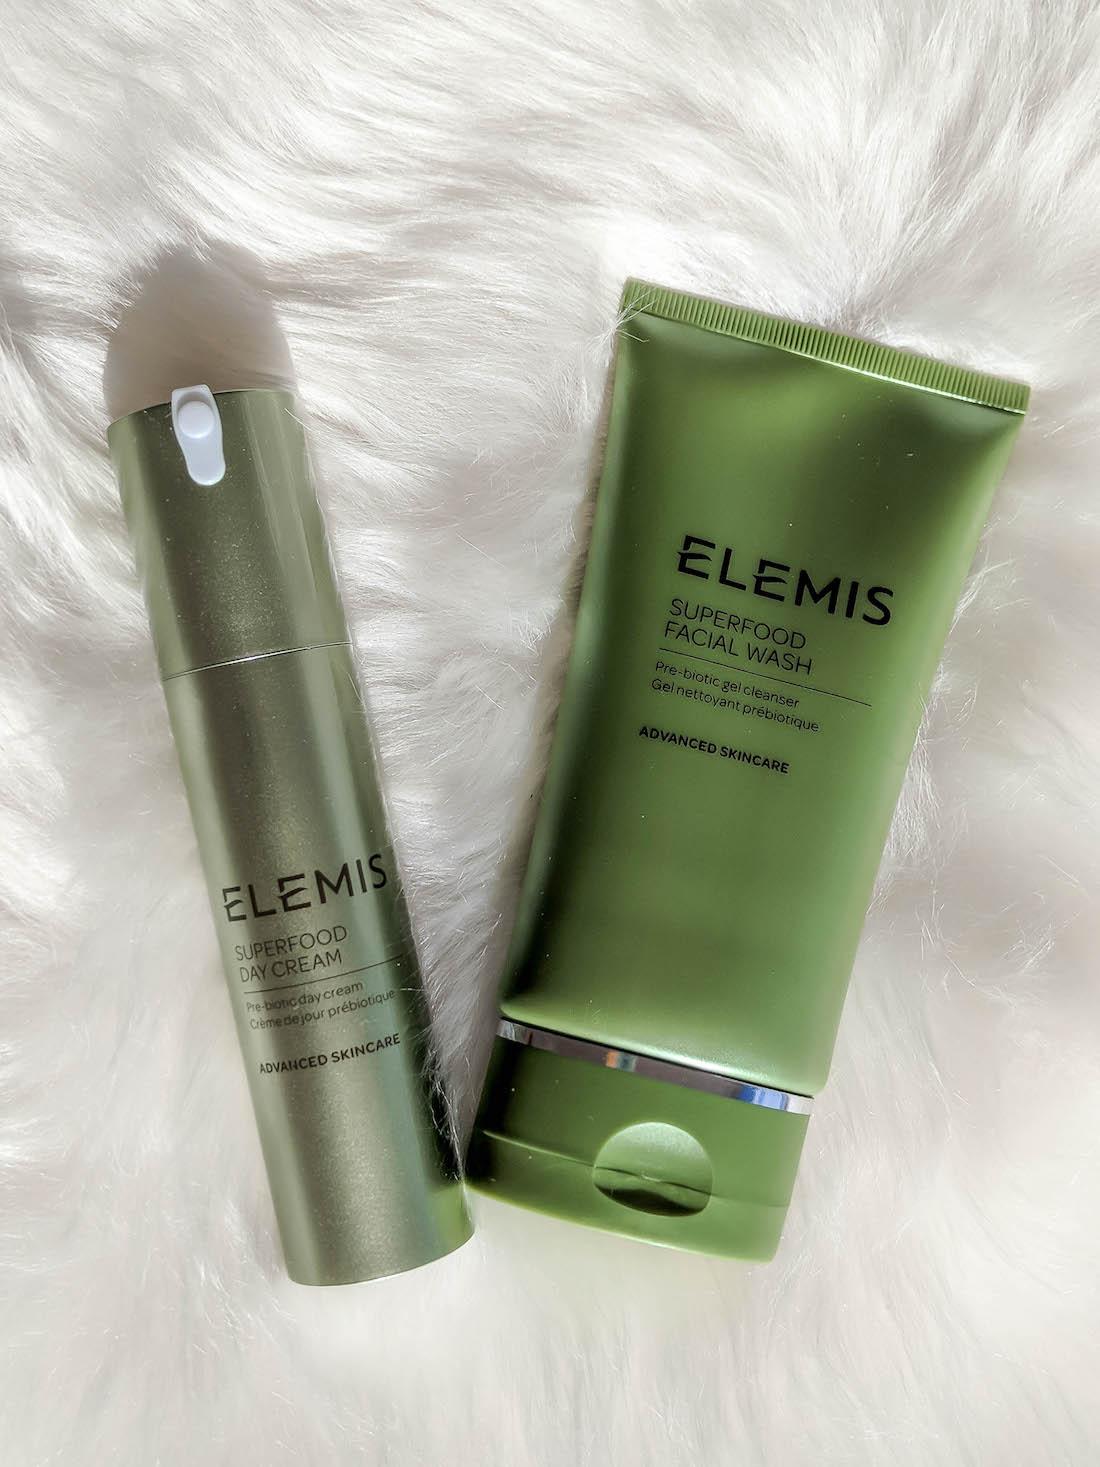 clean beauty - Elemis (1 of 1)